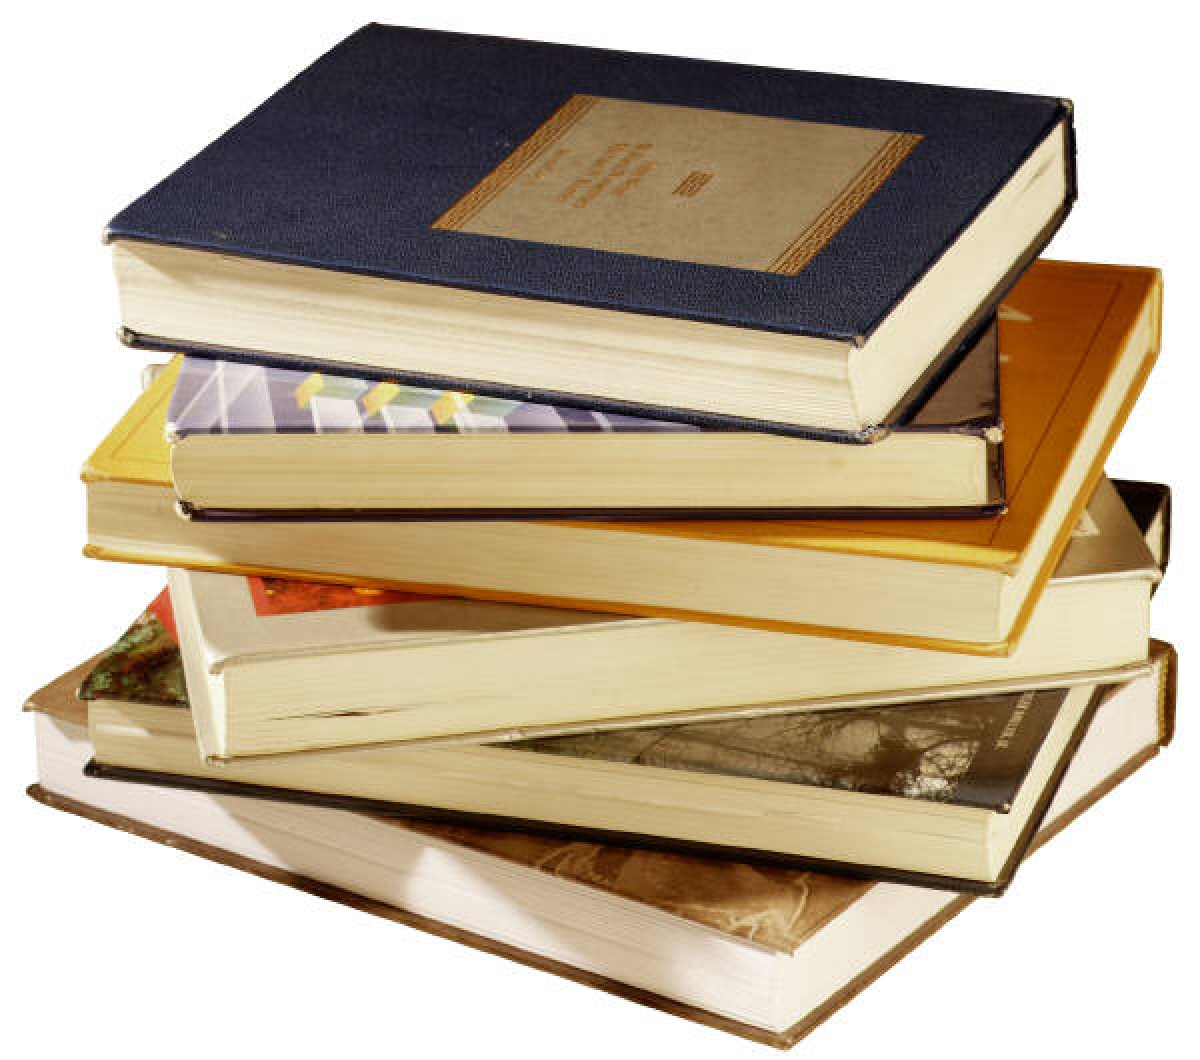 Images with books picture freeuse Pictures of a books - ClipartFest picture freeuse